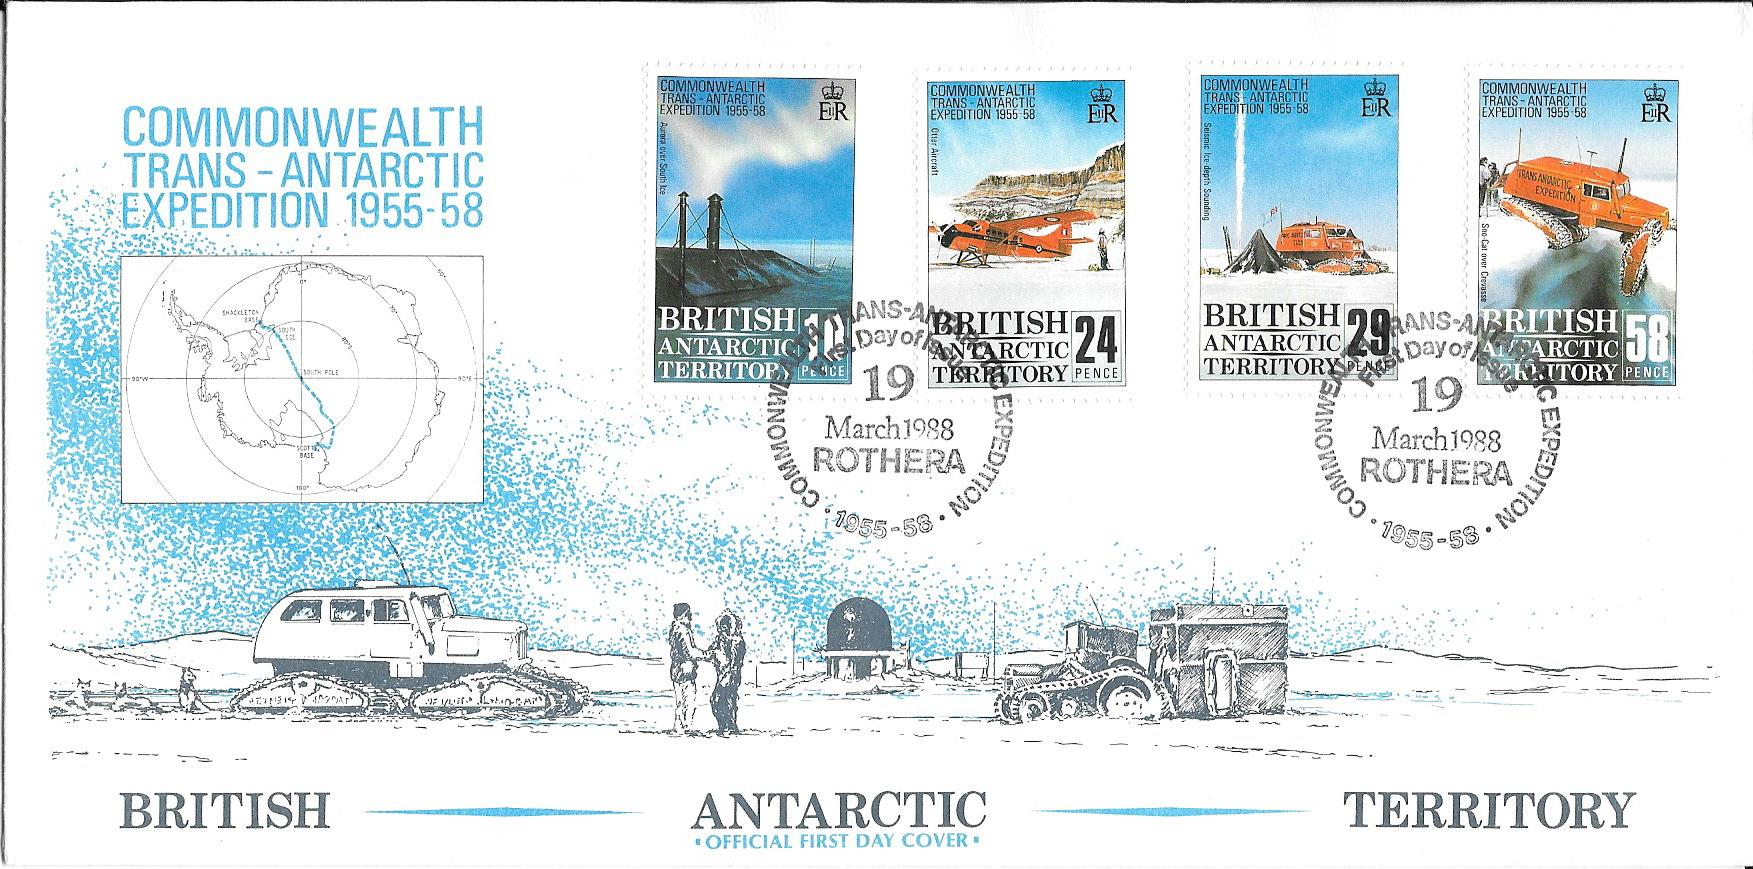 Commonwealth Trans - Antarctic Expedition 1955 - 1958 Cover